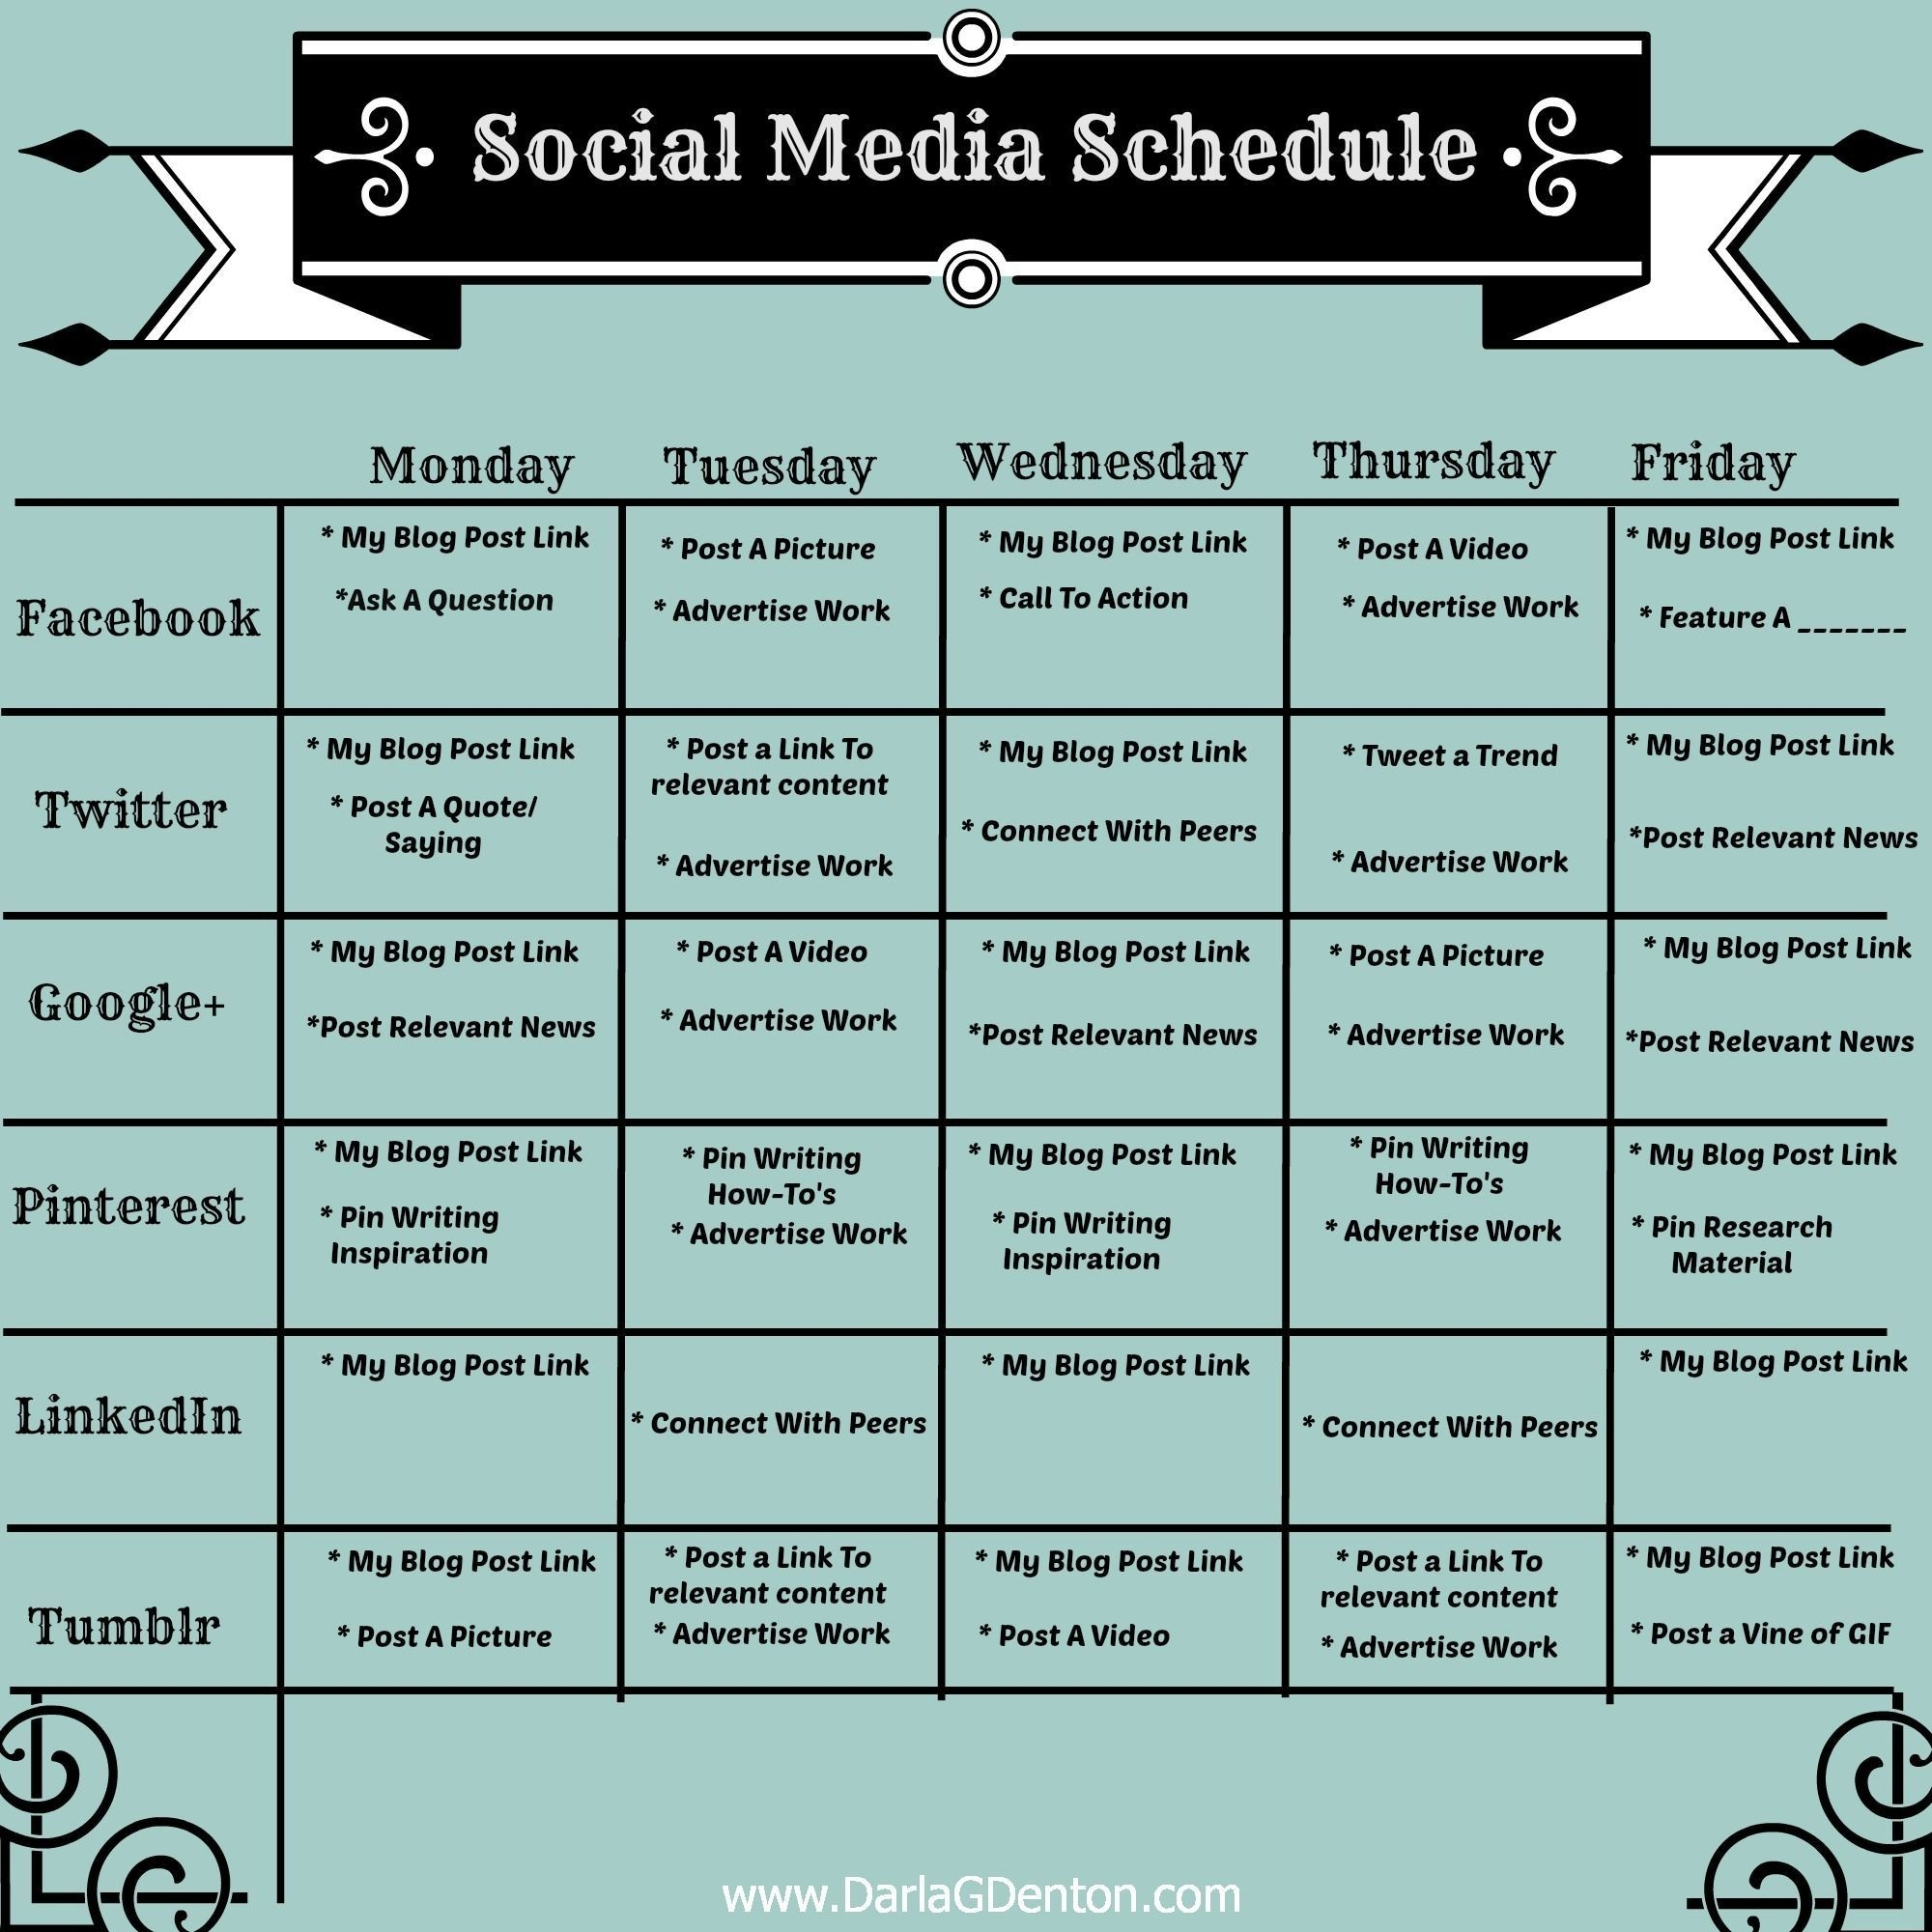 006 Social Media Posting Schedule Template Best Ideas Free-Social Media Posting Schedule Template